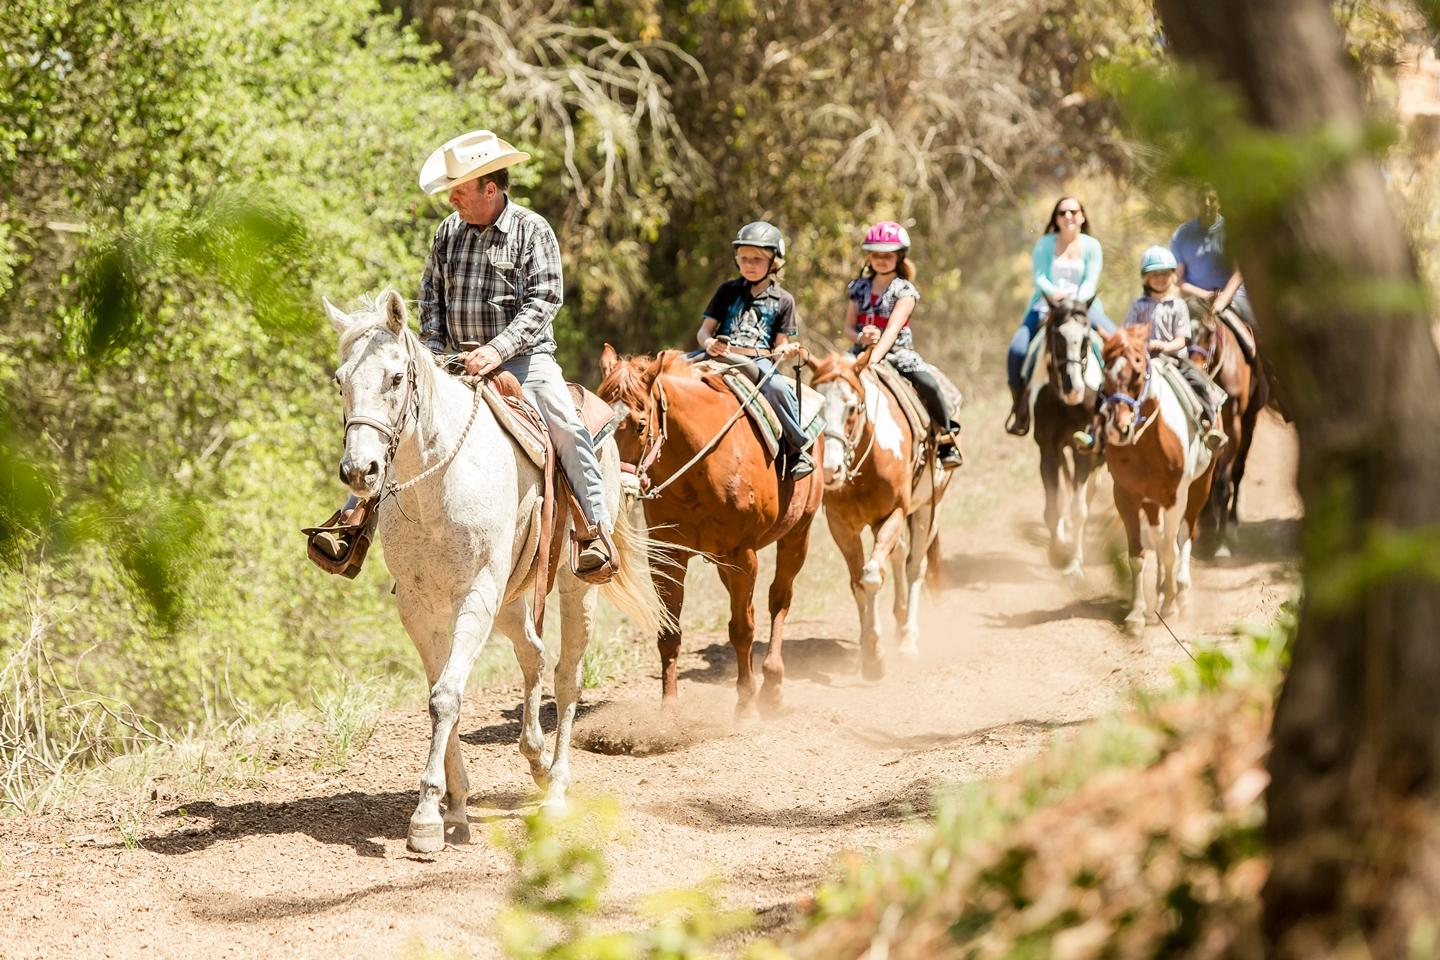 Horse back riding activity in Palos Verdes